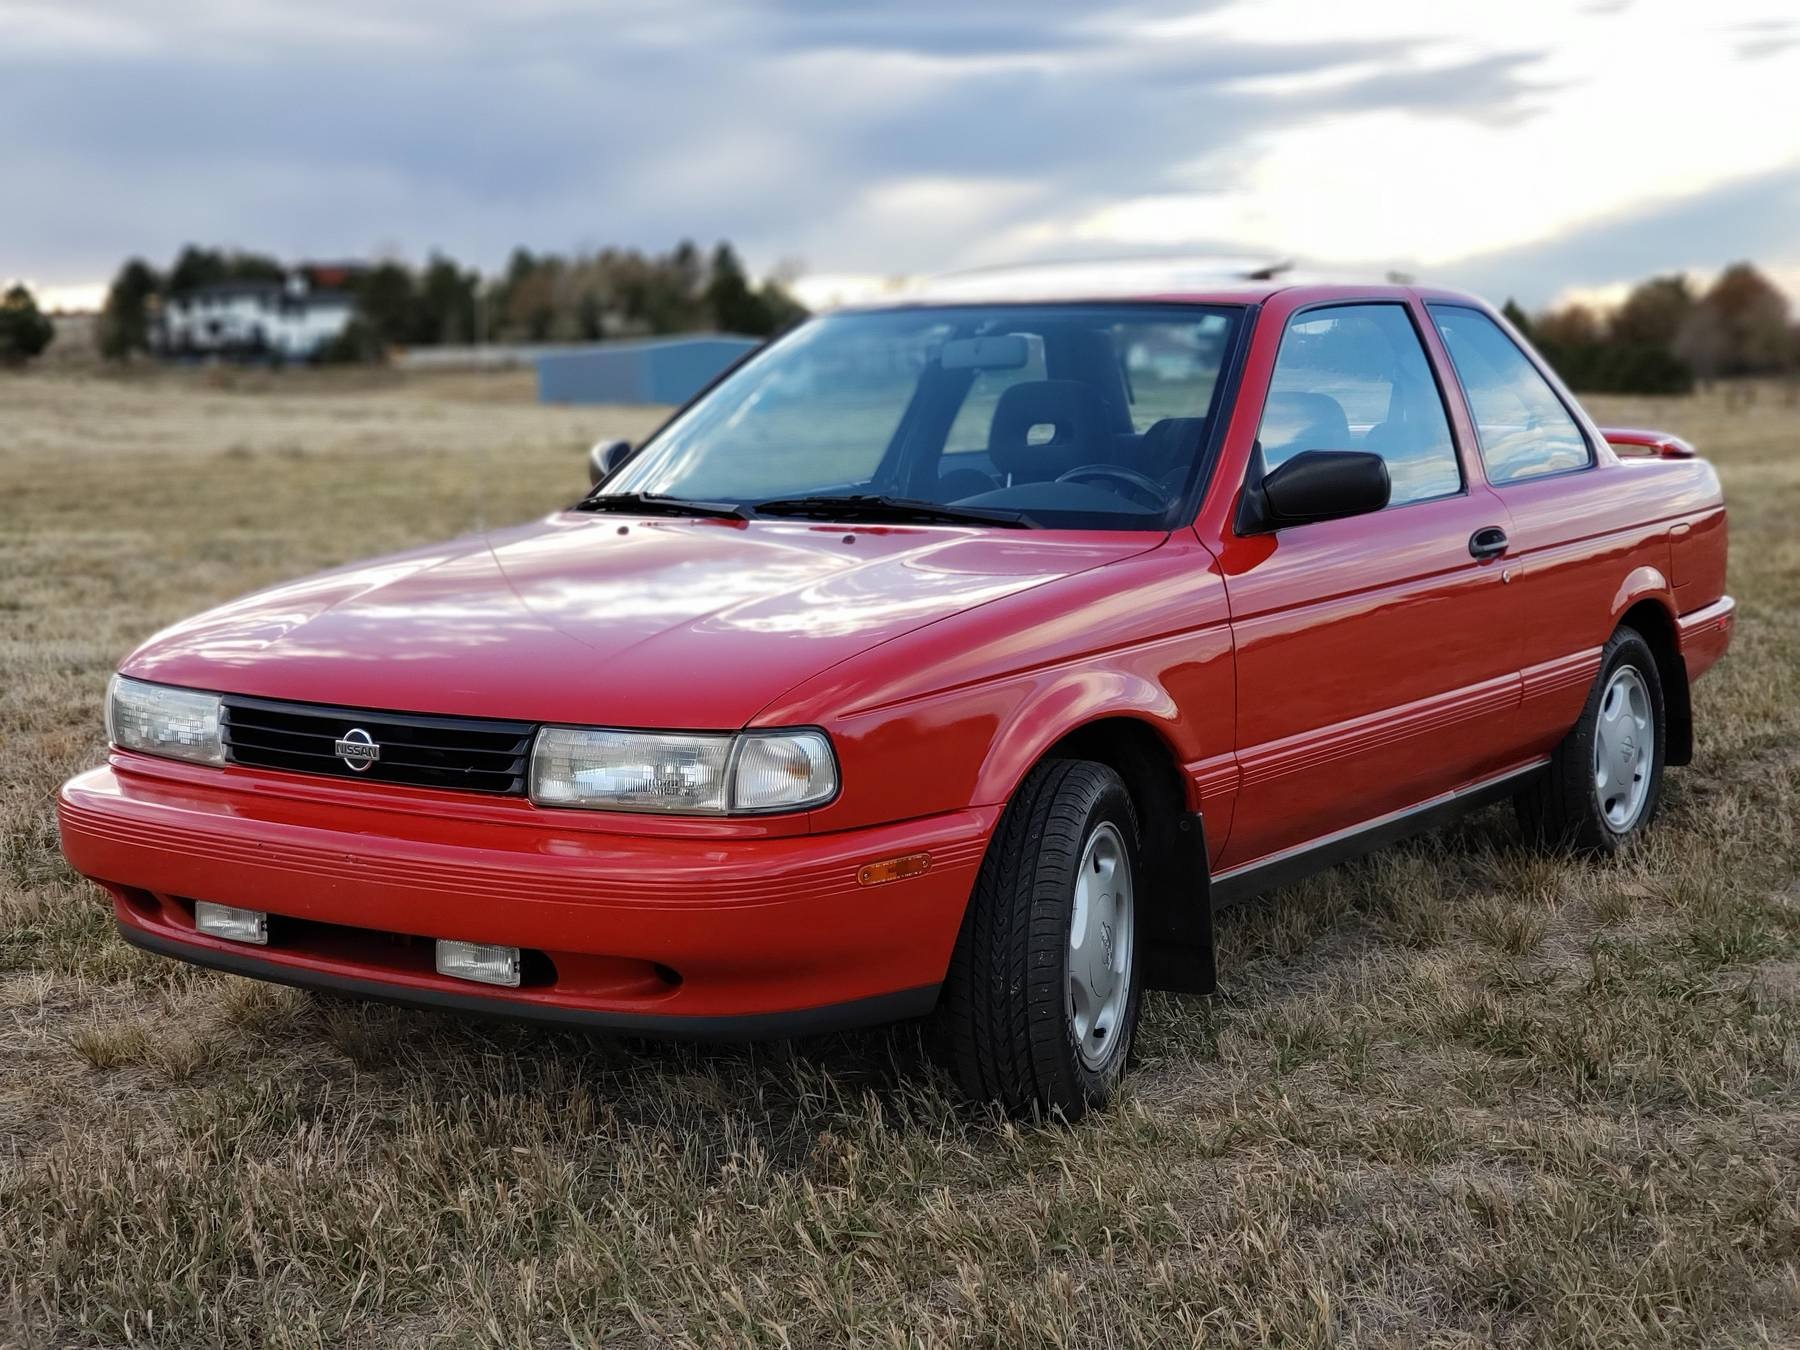 Cars And Bids Bargain Of The Week 1991 Nissan Sentra Se R The nissan sentra is a car produced by nissan since 1982. 1991 nissan sentra se r